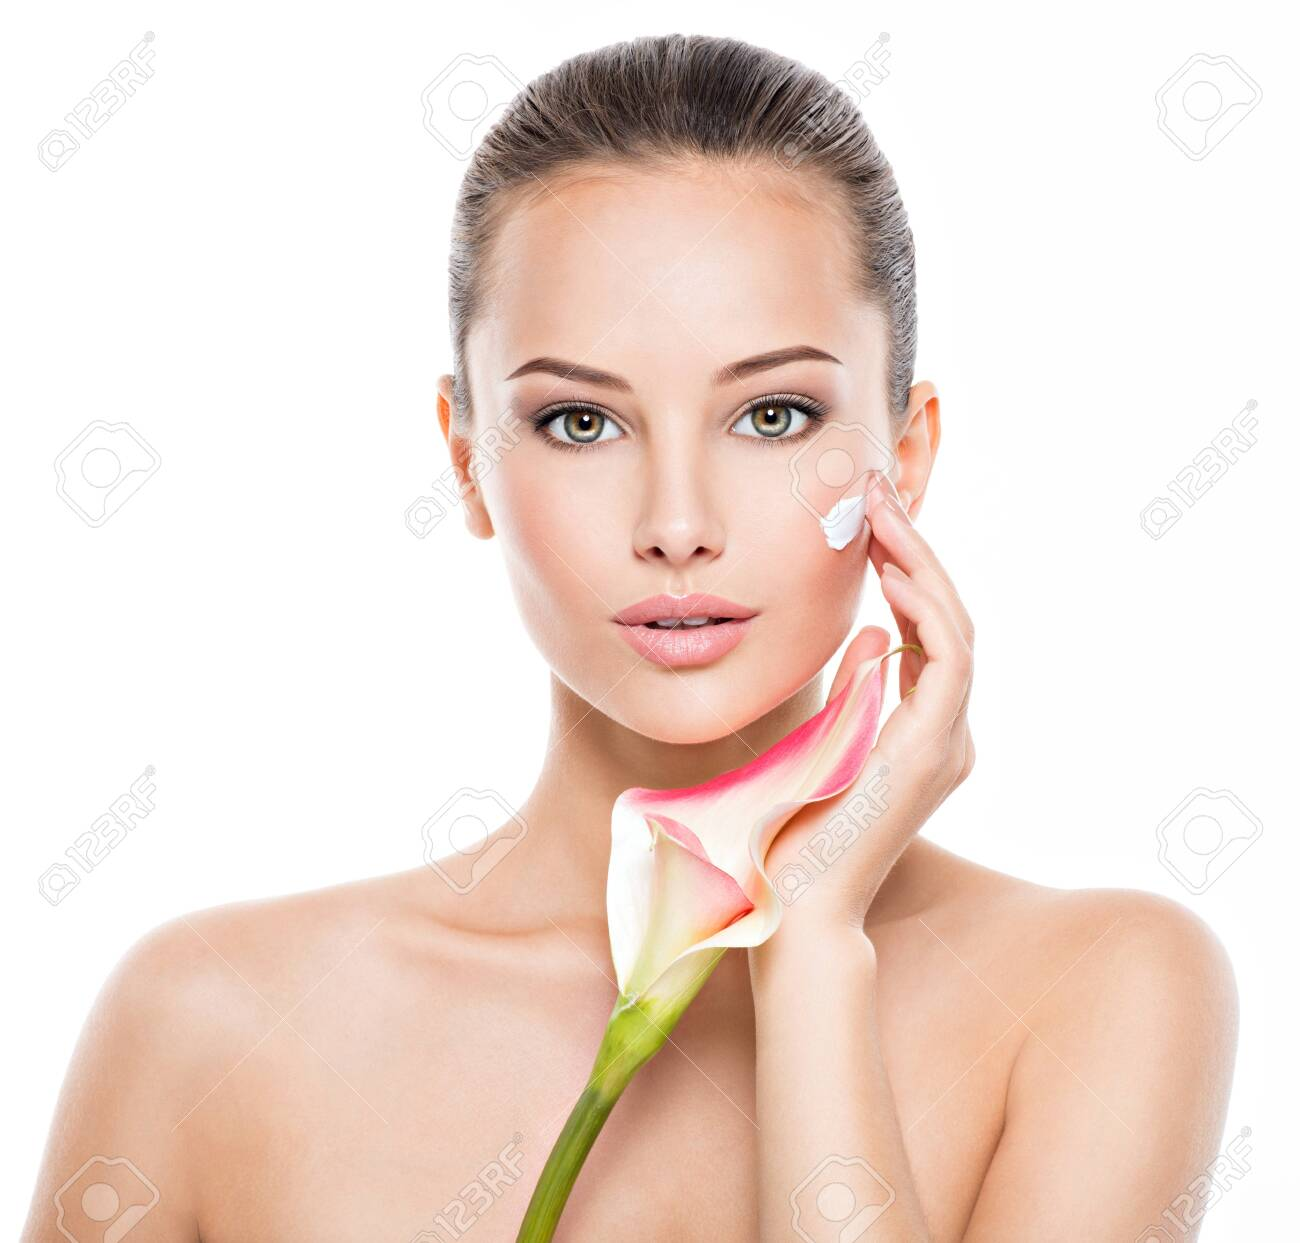 Woman applying cosmetic cream on a face. Fresh flower on the body - 130478540